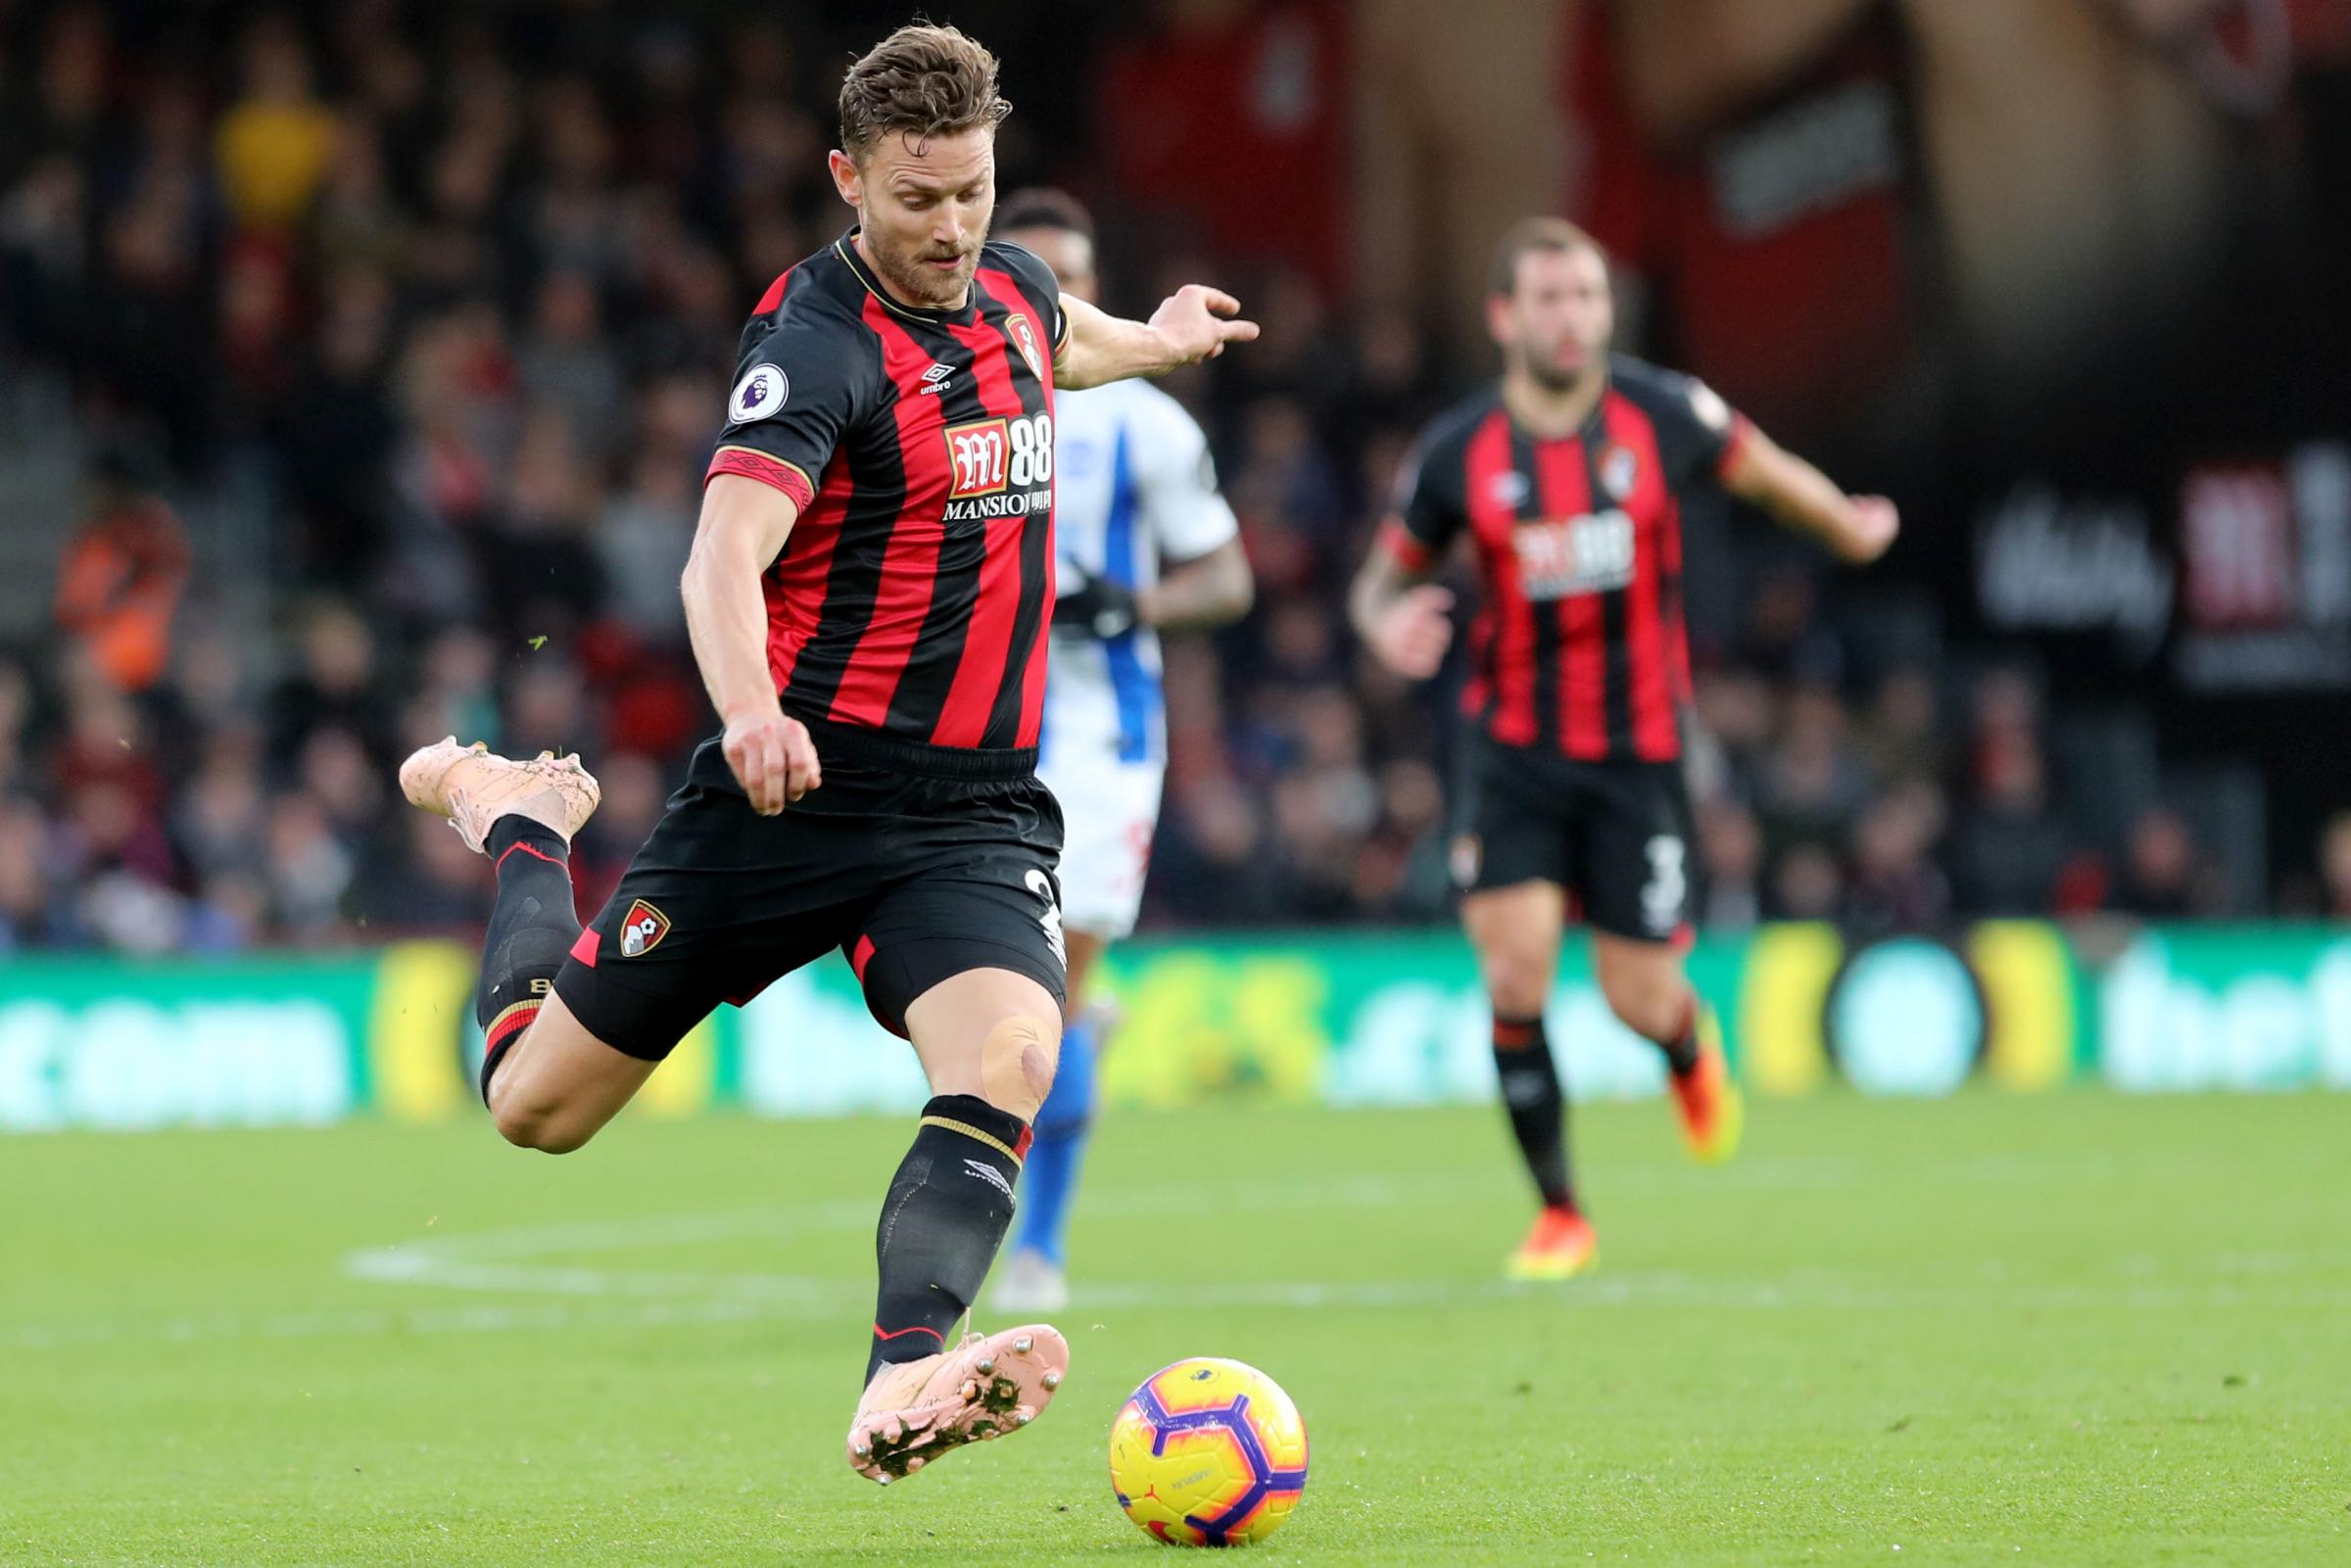 AFC Bournemouth captain Simon Francis delighted to return to the pitch after lengthy injury lay-off